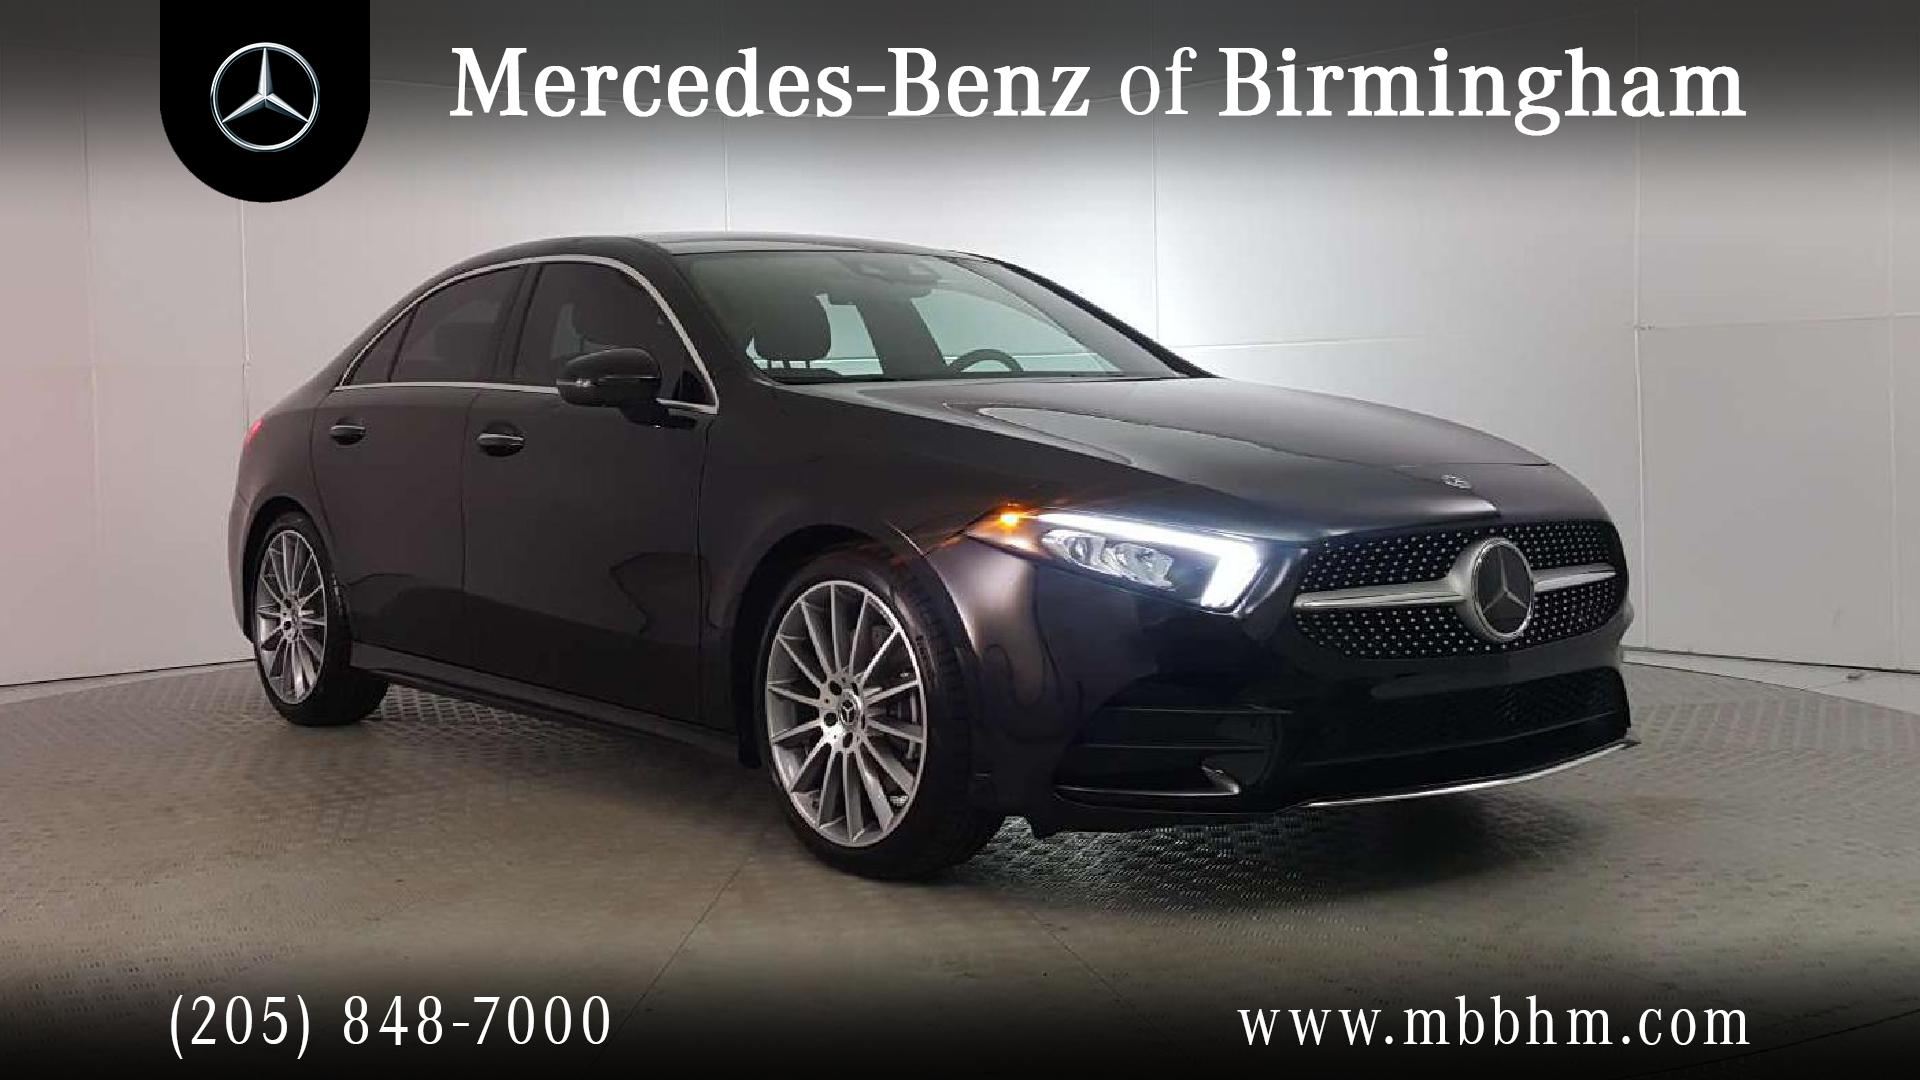 Certified Pre Owned Mercedes >> 101 Certified Pre Owned Mercedes Benz Mercedes Benz Of Birmingham